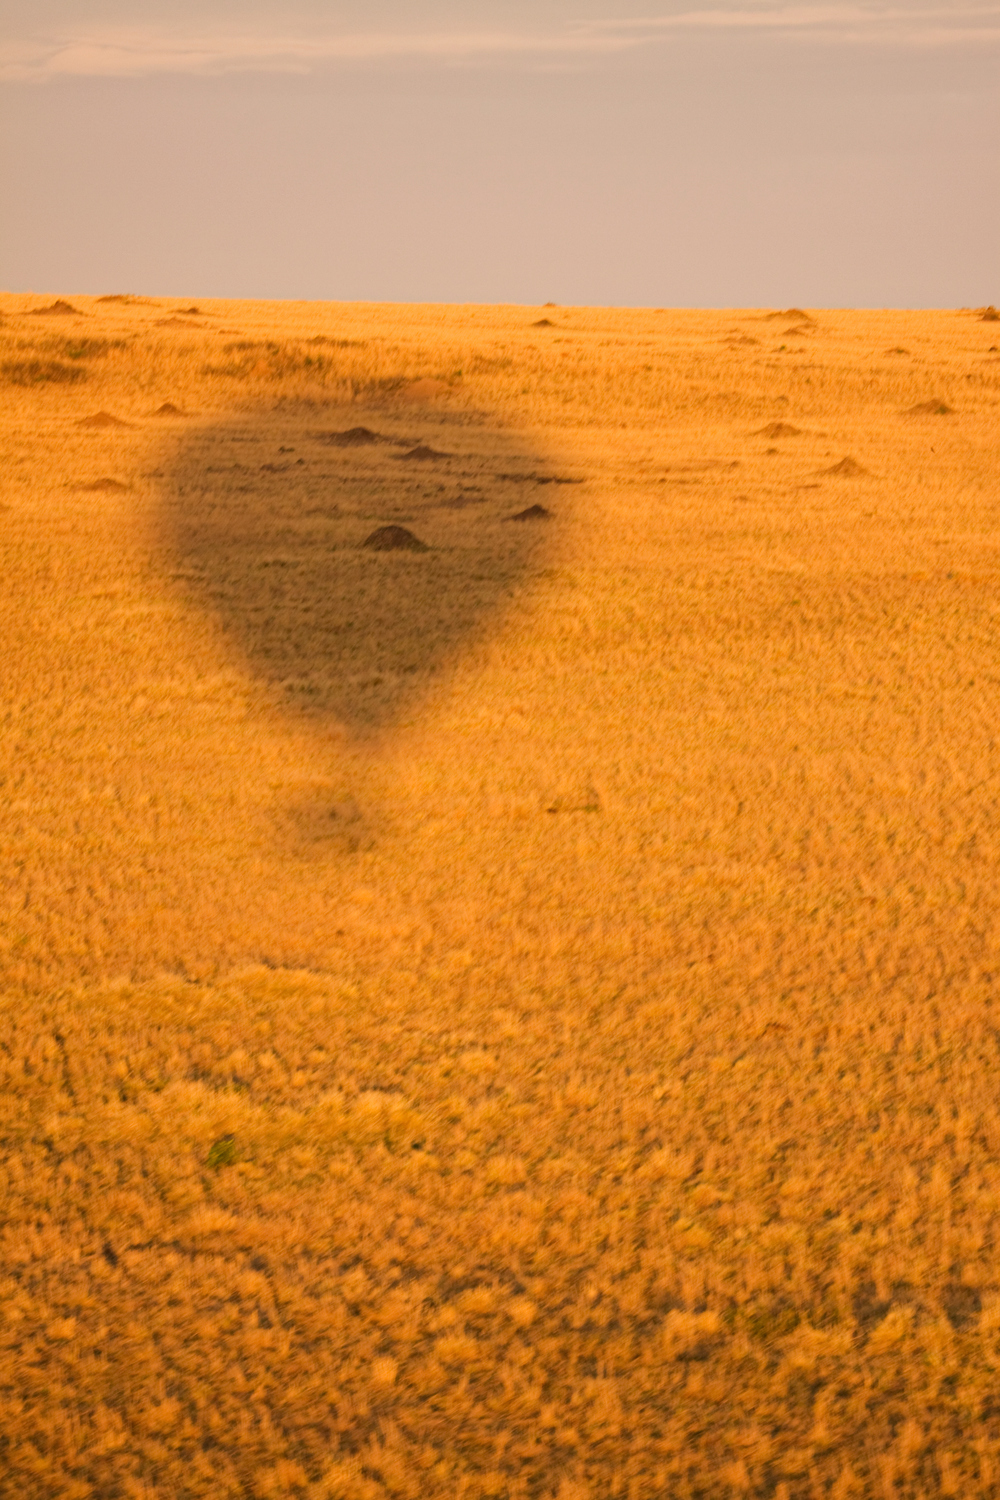 Silhouette of Hot Air Ballon over the Masai Mara